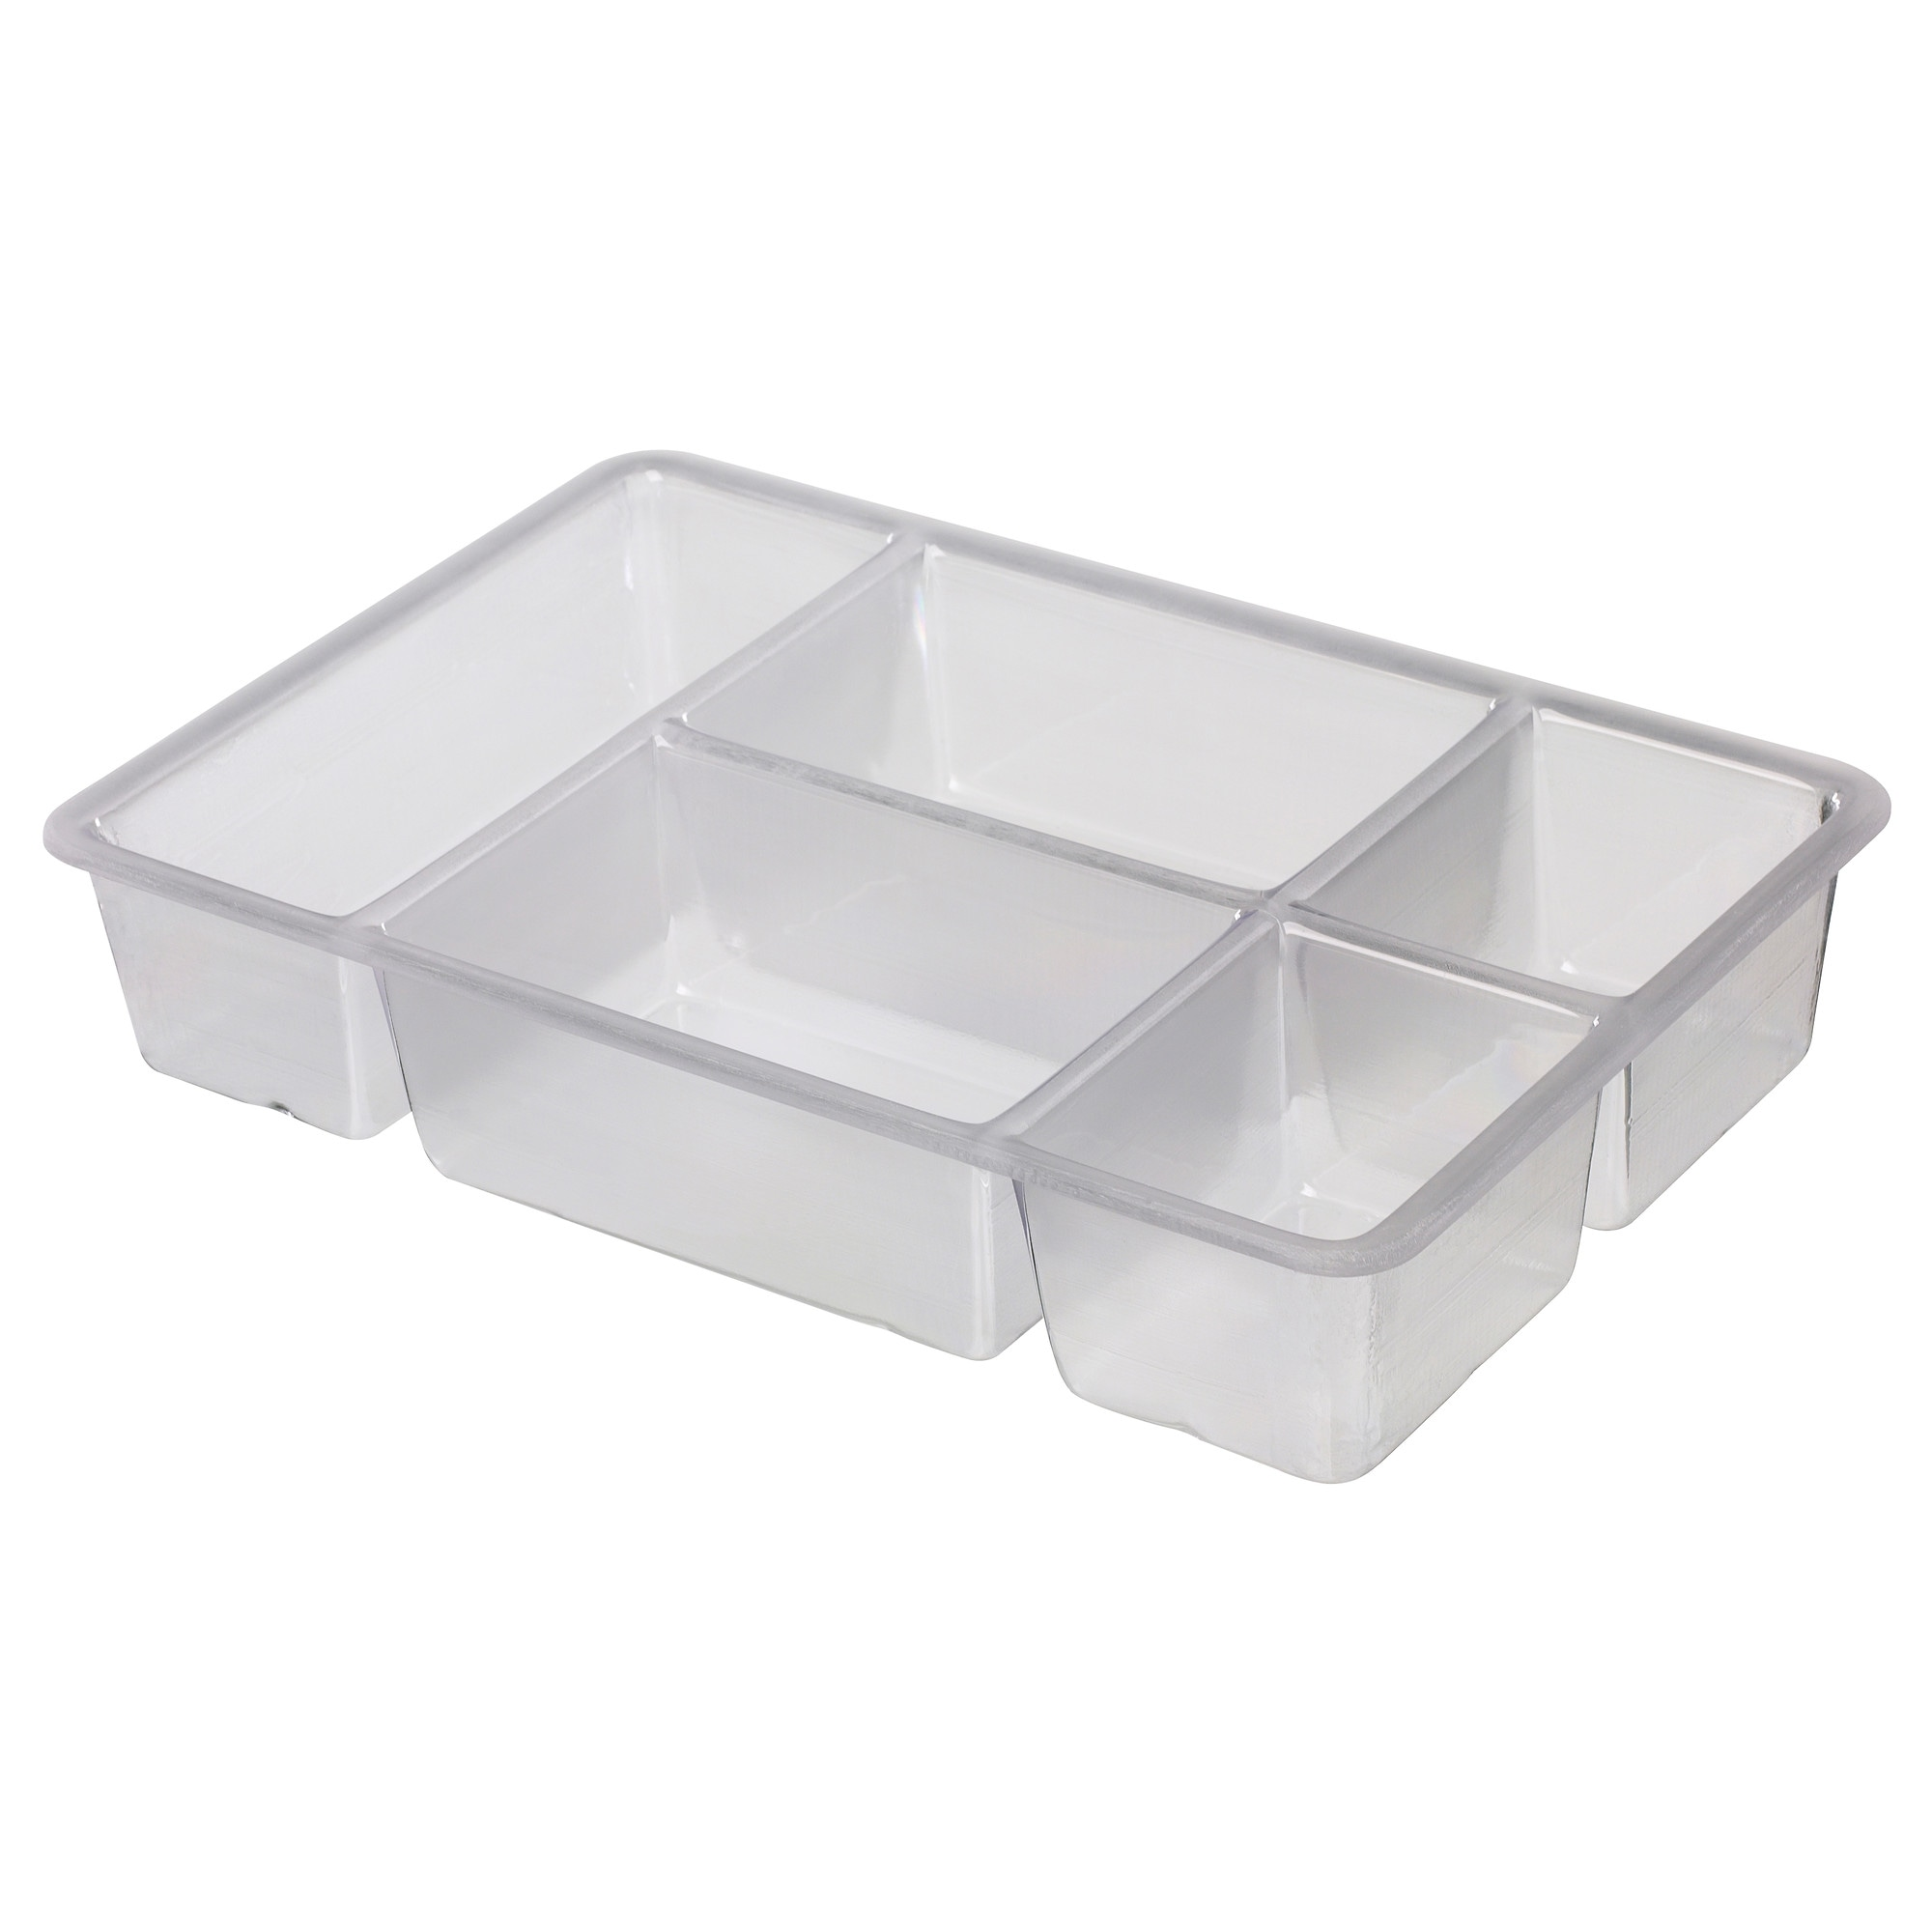 Plastic makeup drawers ikea makeup vidalondon Makeup drawer organizer ikea